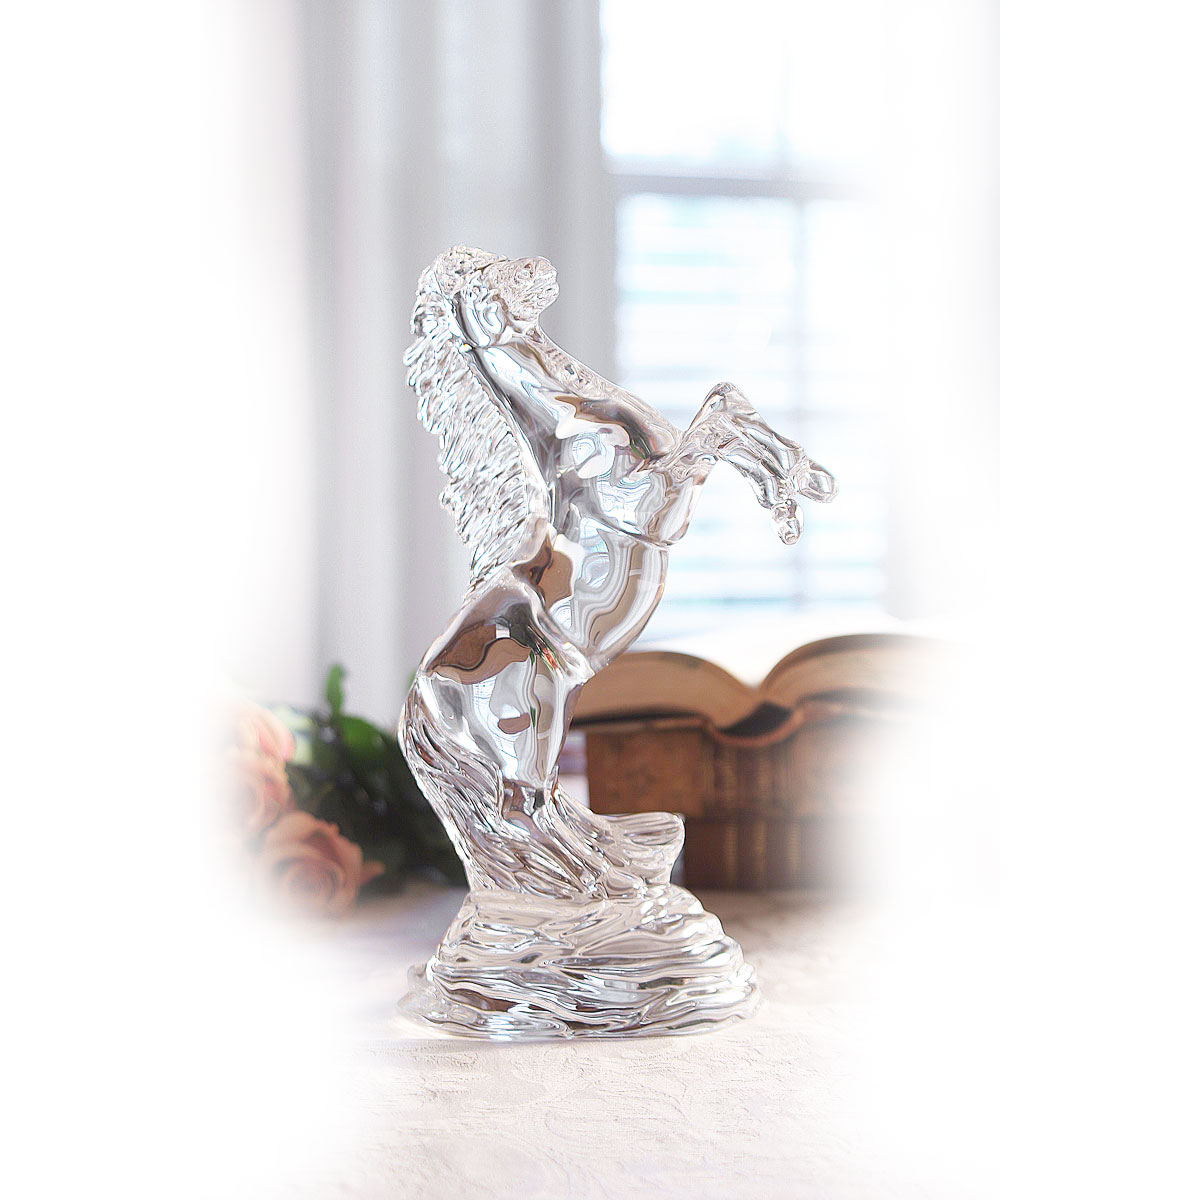 Waterford Crystal, Rearing Horse Sculpture